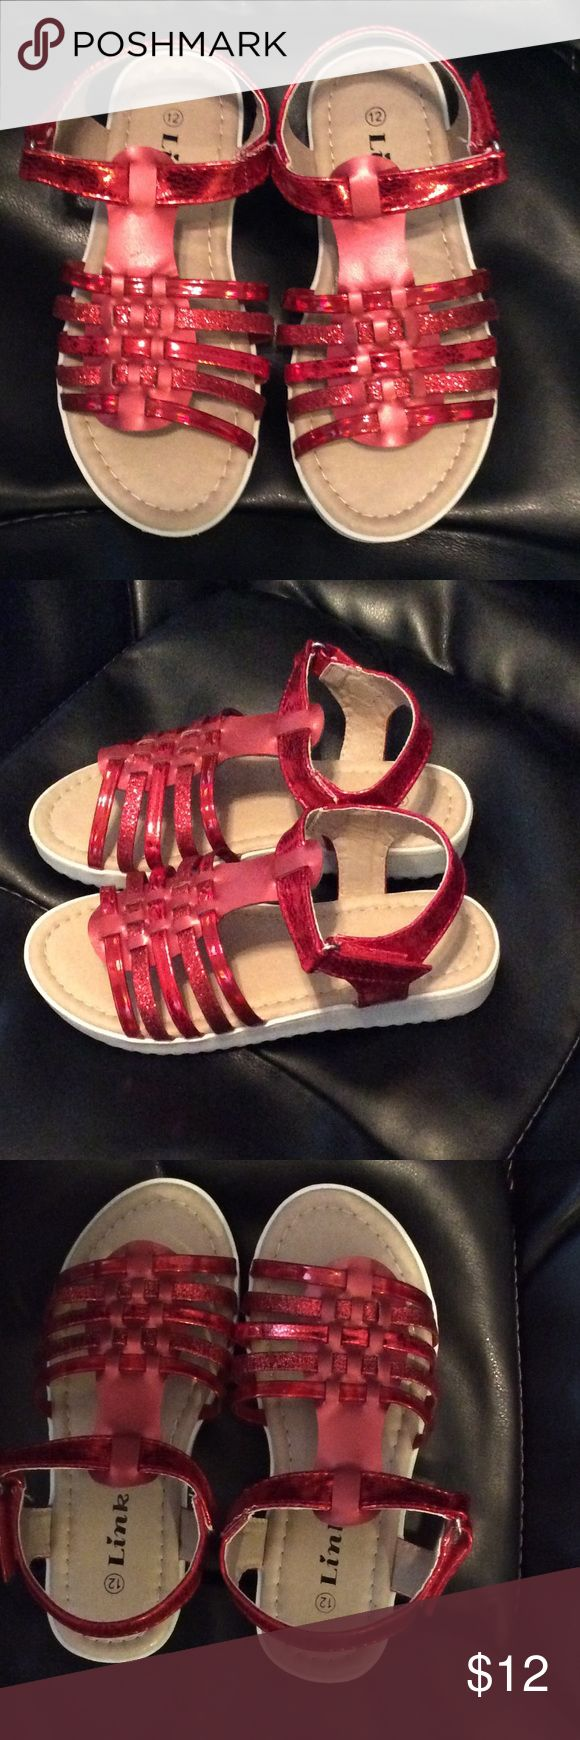 Links Kristen Red Girls Sandals Size 12 These are the ruby red slippers gone sandals! Glistening red strapped Girls sandals with rubber soles and hook and loop closure. Brand new in Box, Size 12 Links Shoes Sandals & Flip Flops